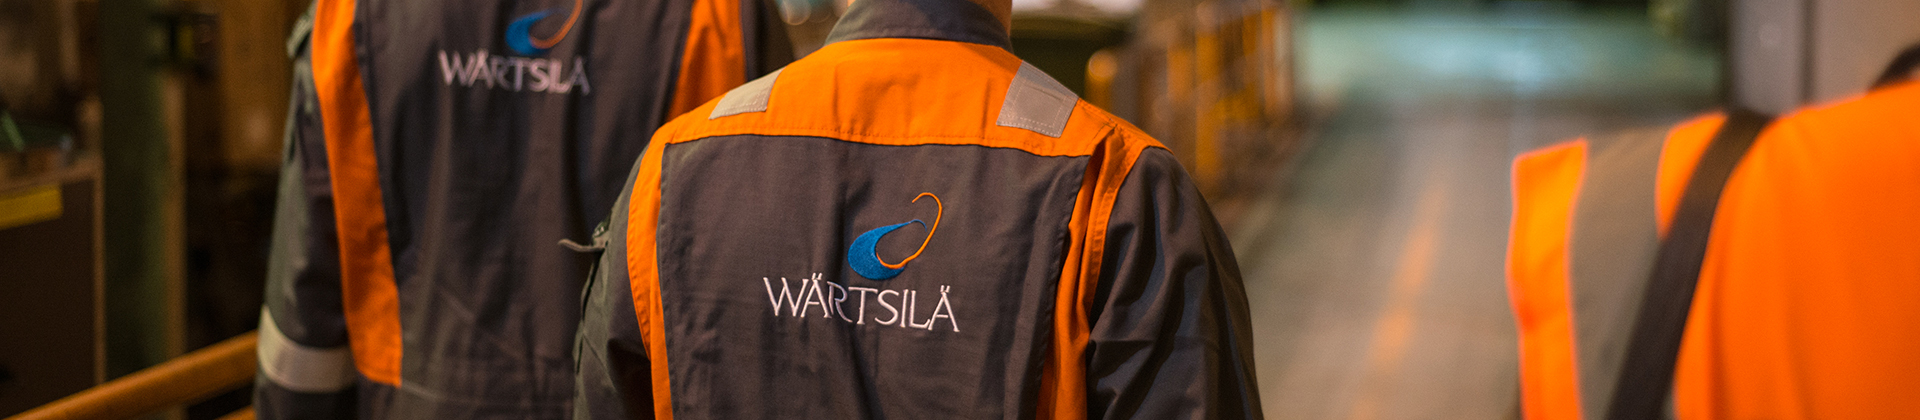 wartsila-seals-bearings-field-service-engineers